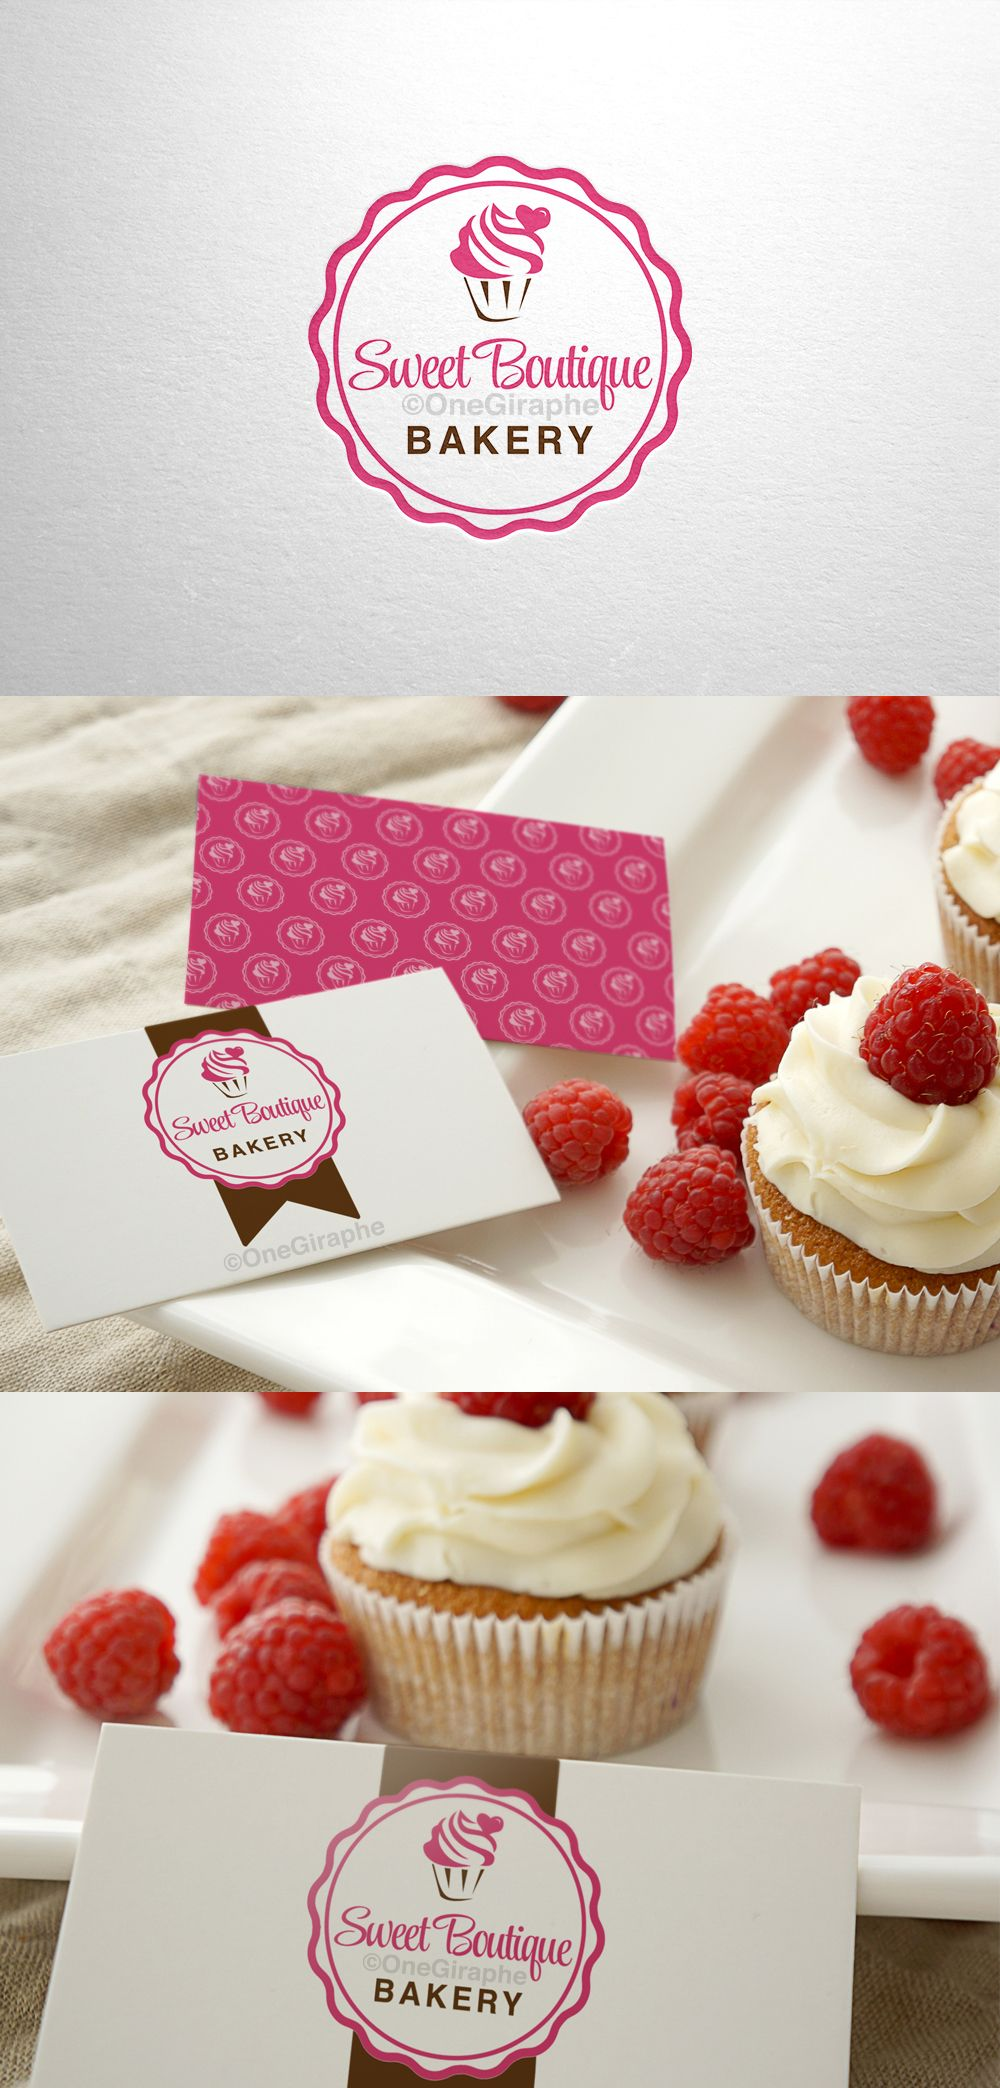 Logo for sale! Find out more : http://one-giraphe.com/prev.php?c=109 #design #logostore #logodesign #cake #cupcake #bakery #graphicdesign #inspiration #creative #logo